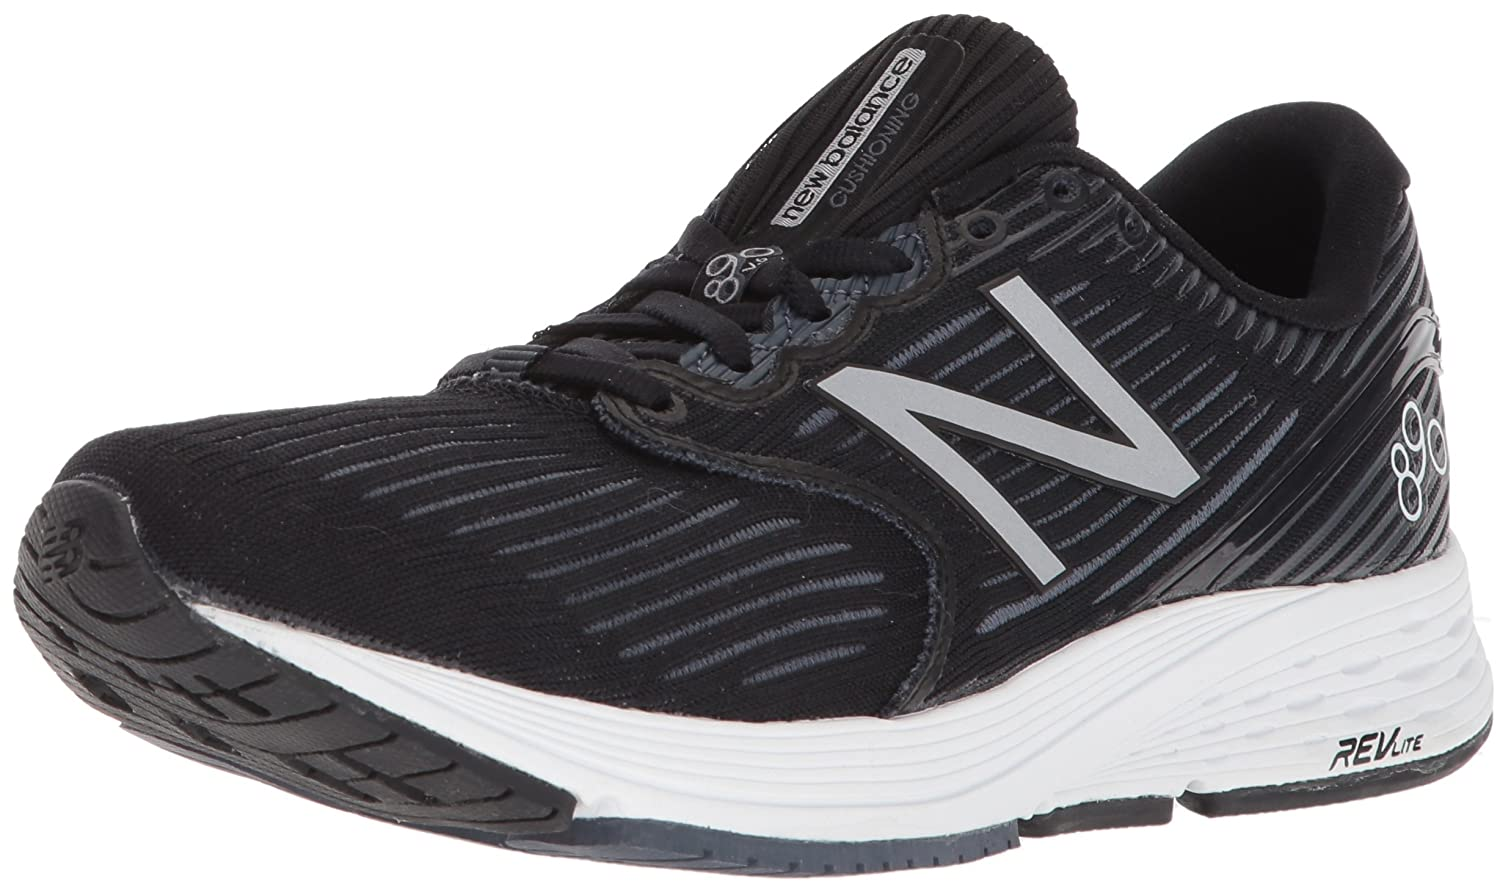 New Balance Women's 890v6 Running Shoe B06XSC6LS6 12 D US|Grey/Black